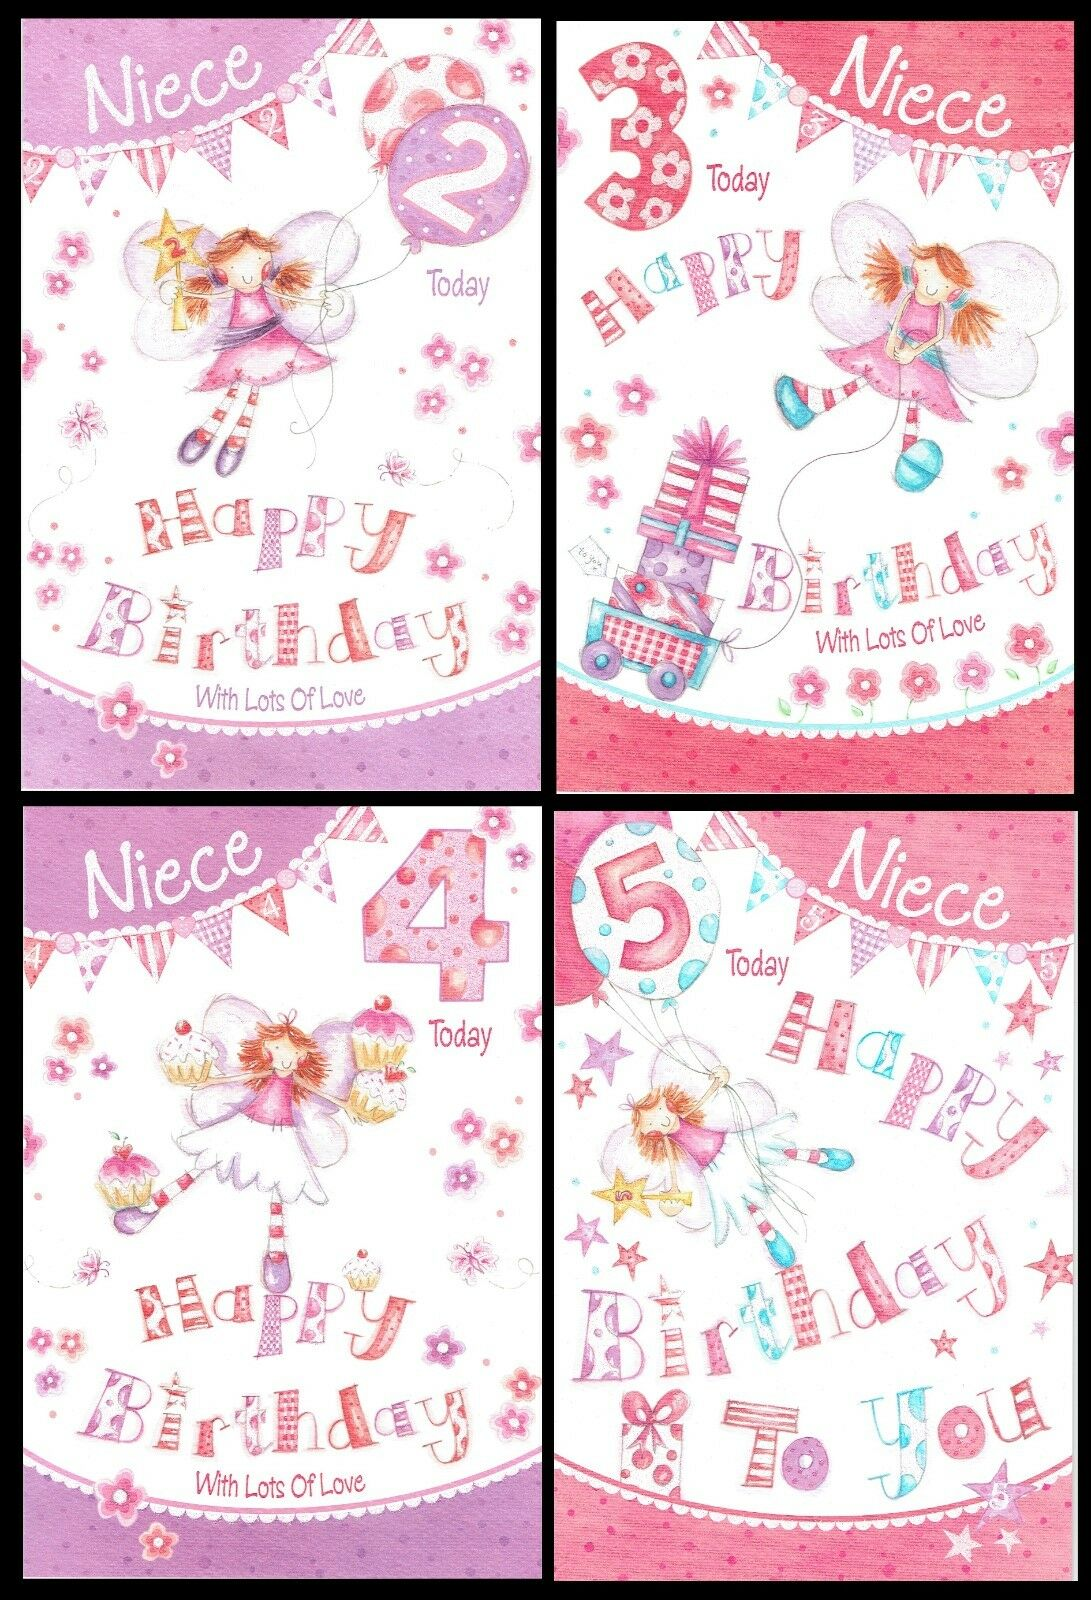 NIECE BIRTHDAY GREETINGS CARDS AGE 4     206139